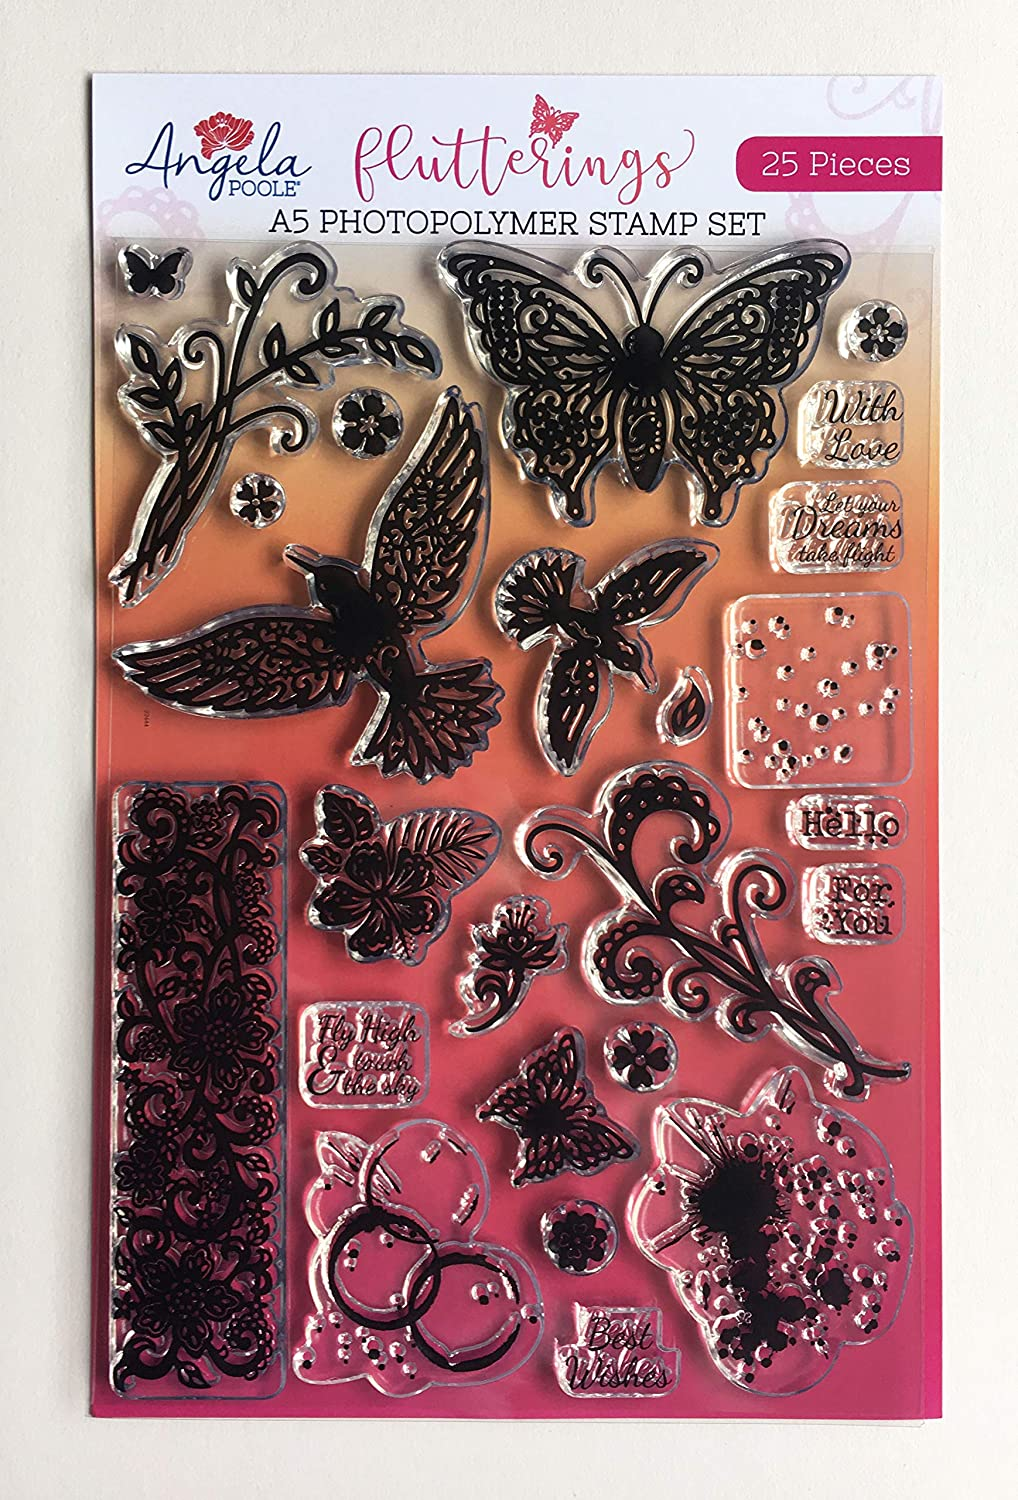 Standard Angela Poole Photopolymer Stamps